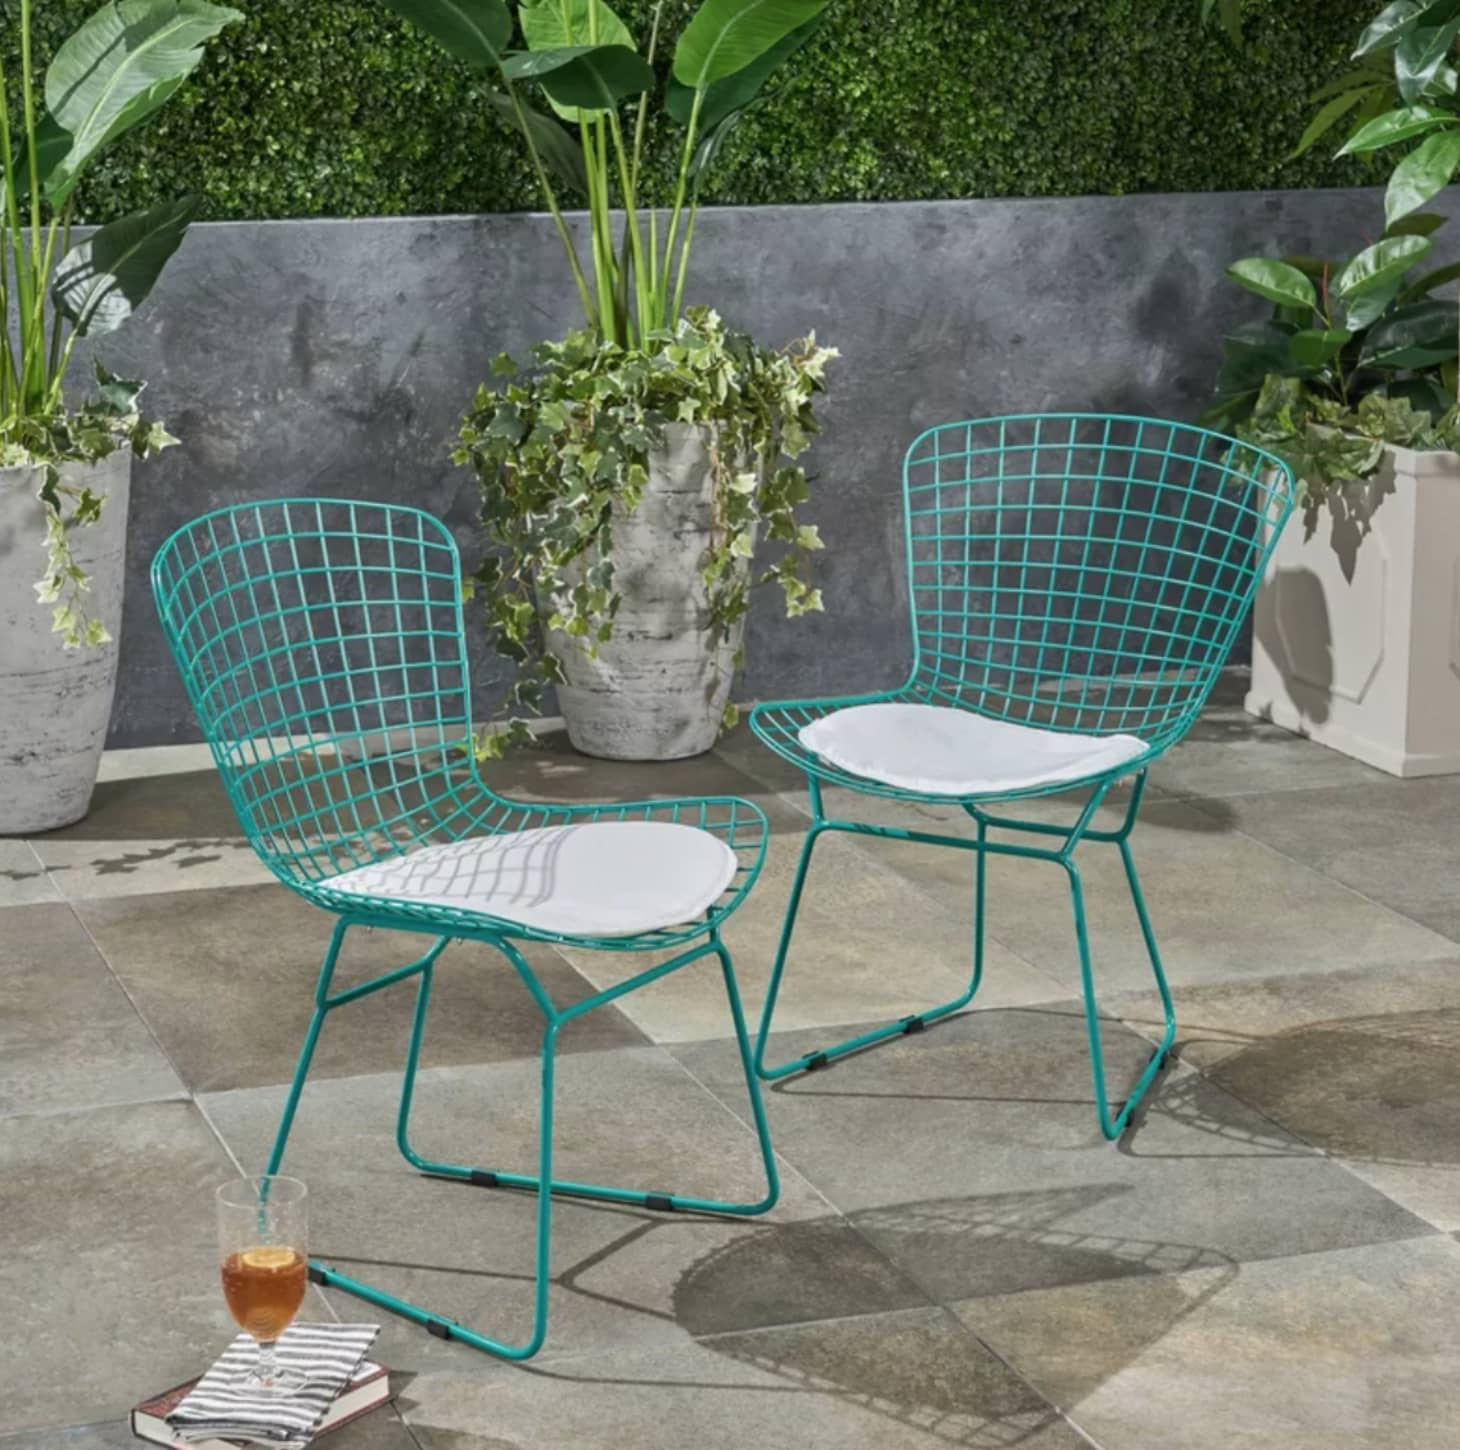 Stylish Outdoor Chairs That Work Inside Too | Apartment Therapy